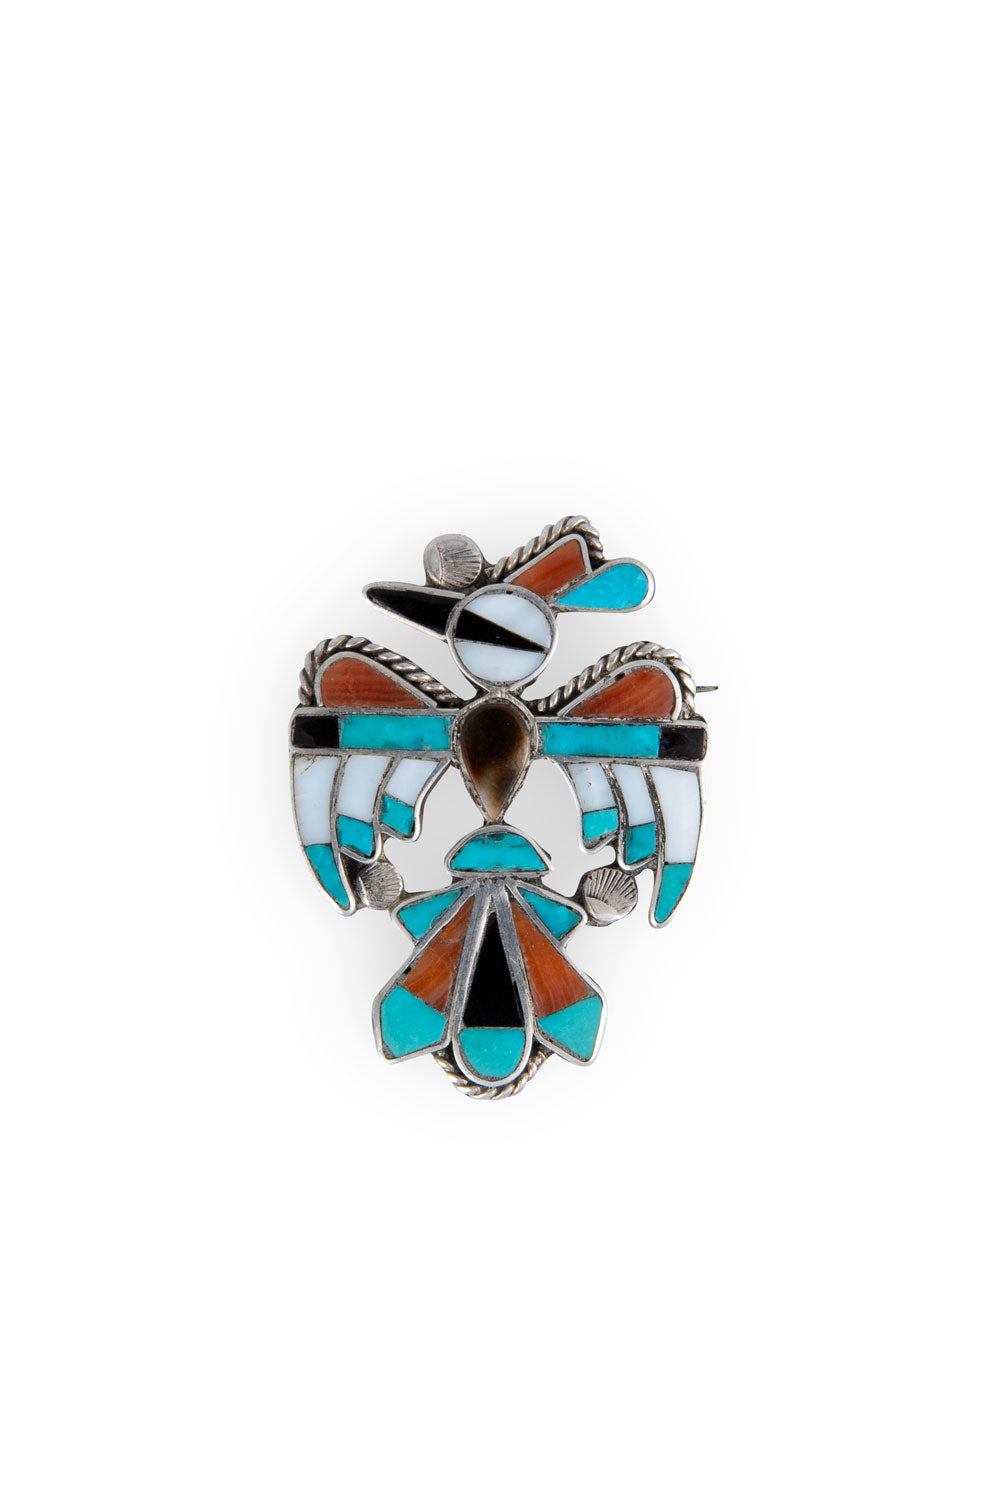 Pin, Zuni Inlay, Rainbird, Vintage, 318